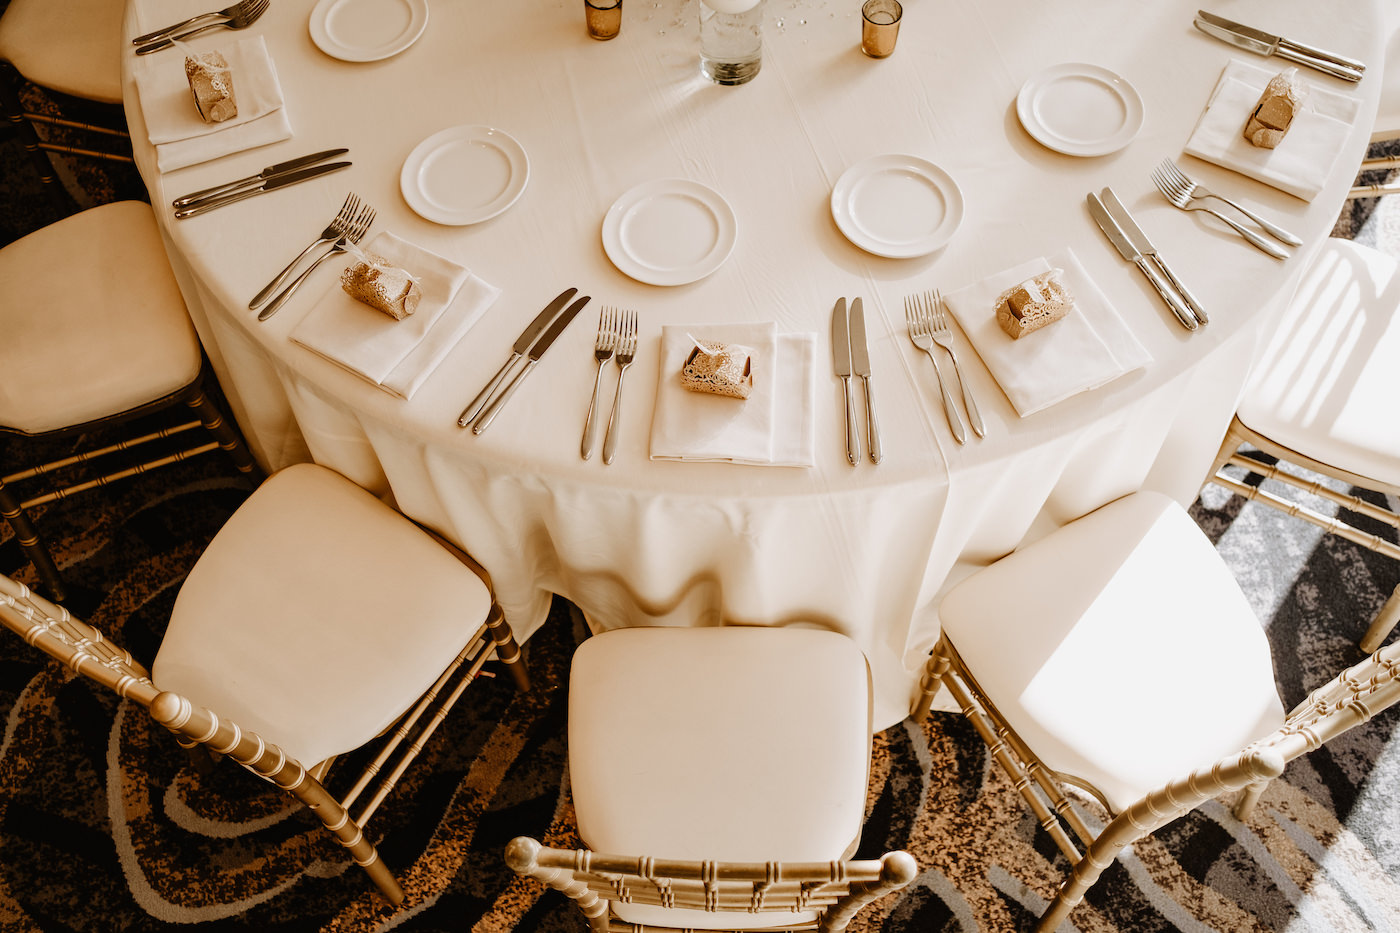 Monochromatic Neutral Wedding Reception Table with Gold Chiavari Chairs and White Linens and Gold Favor Boxes on White Napkins at Place Settings